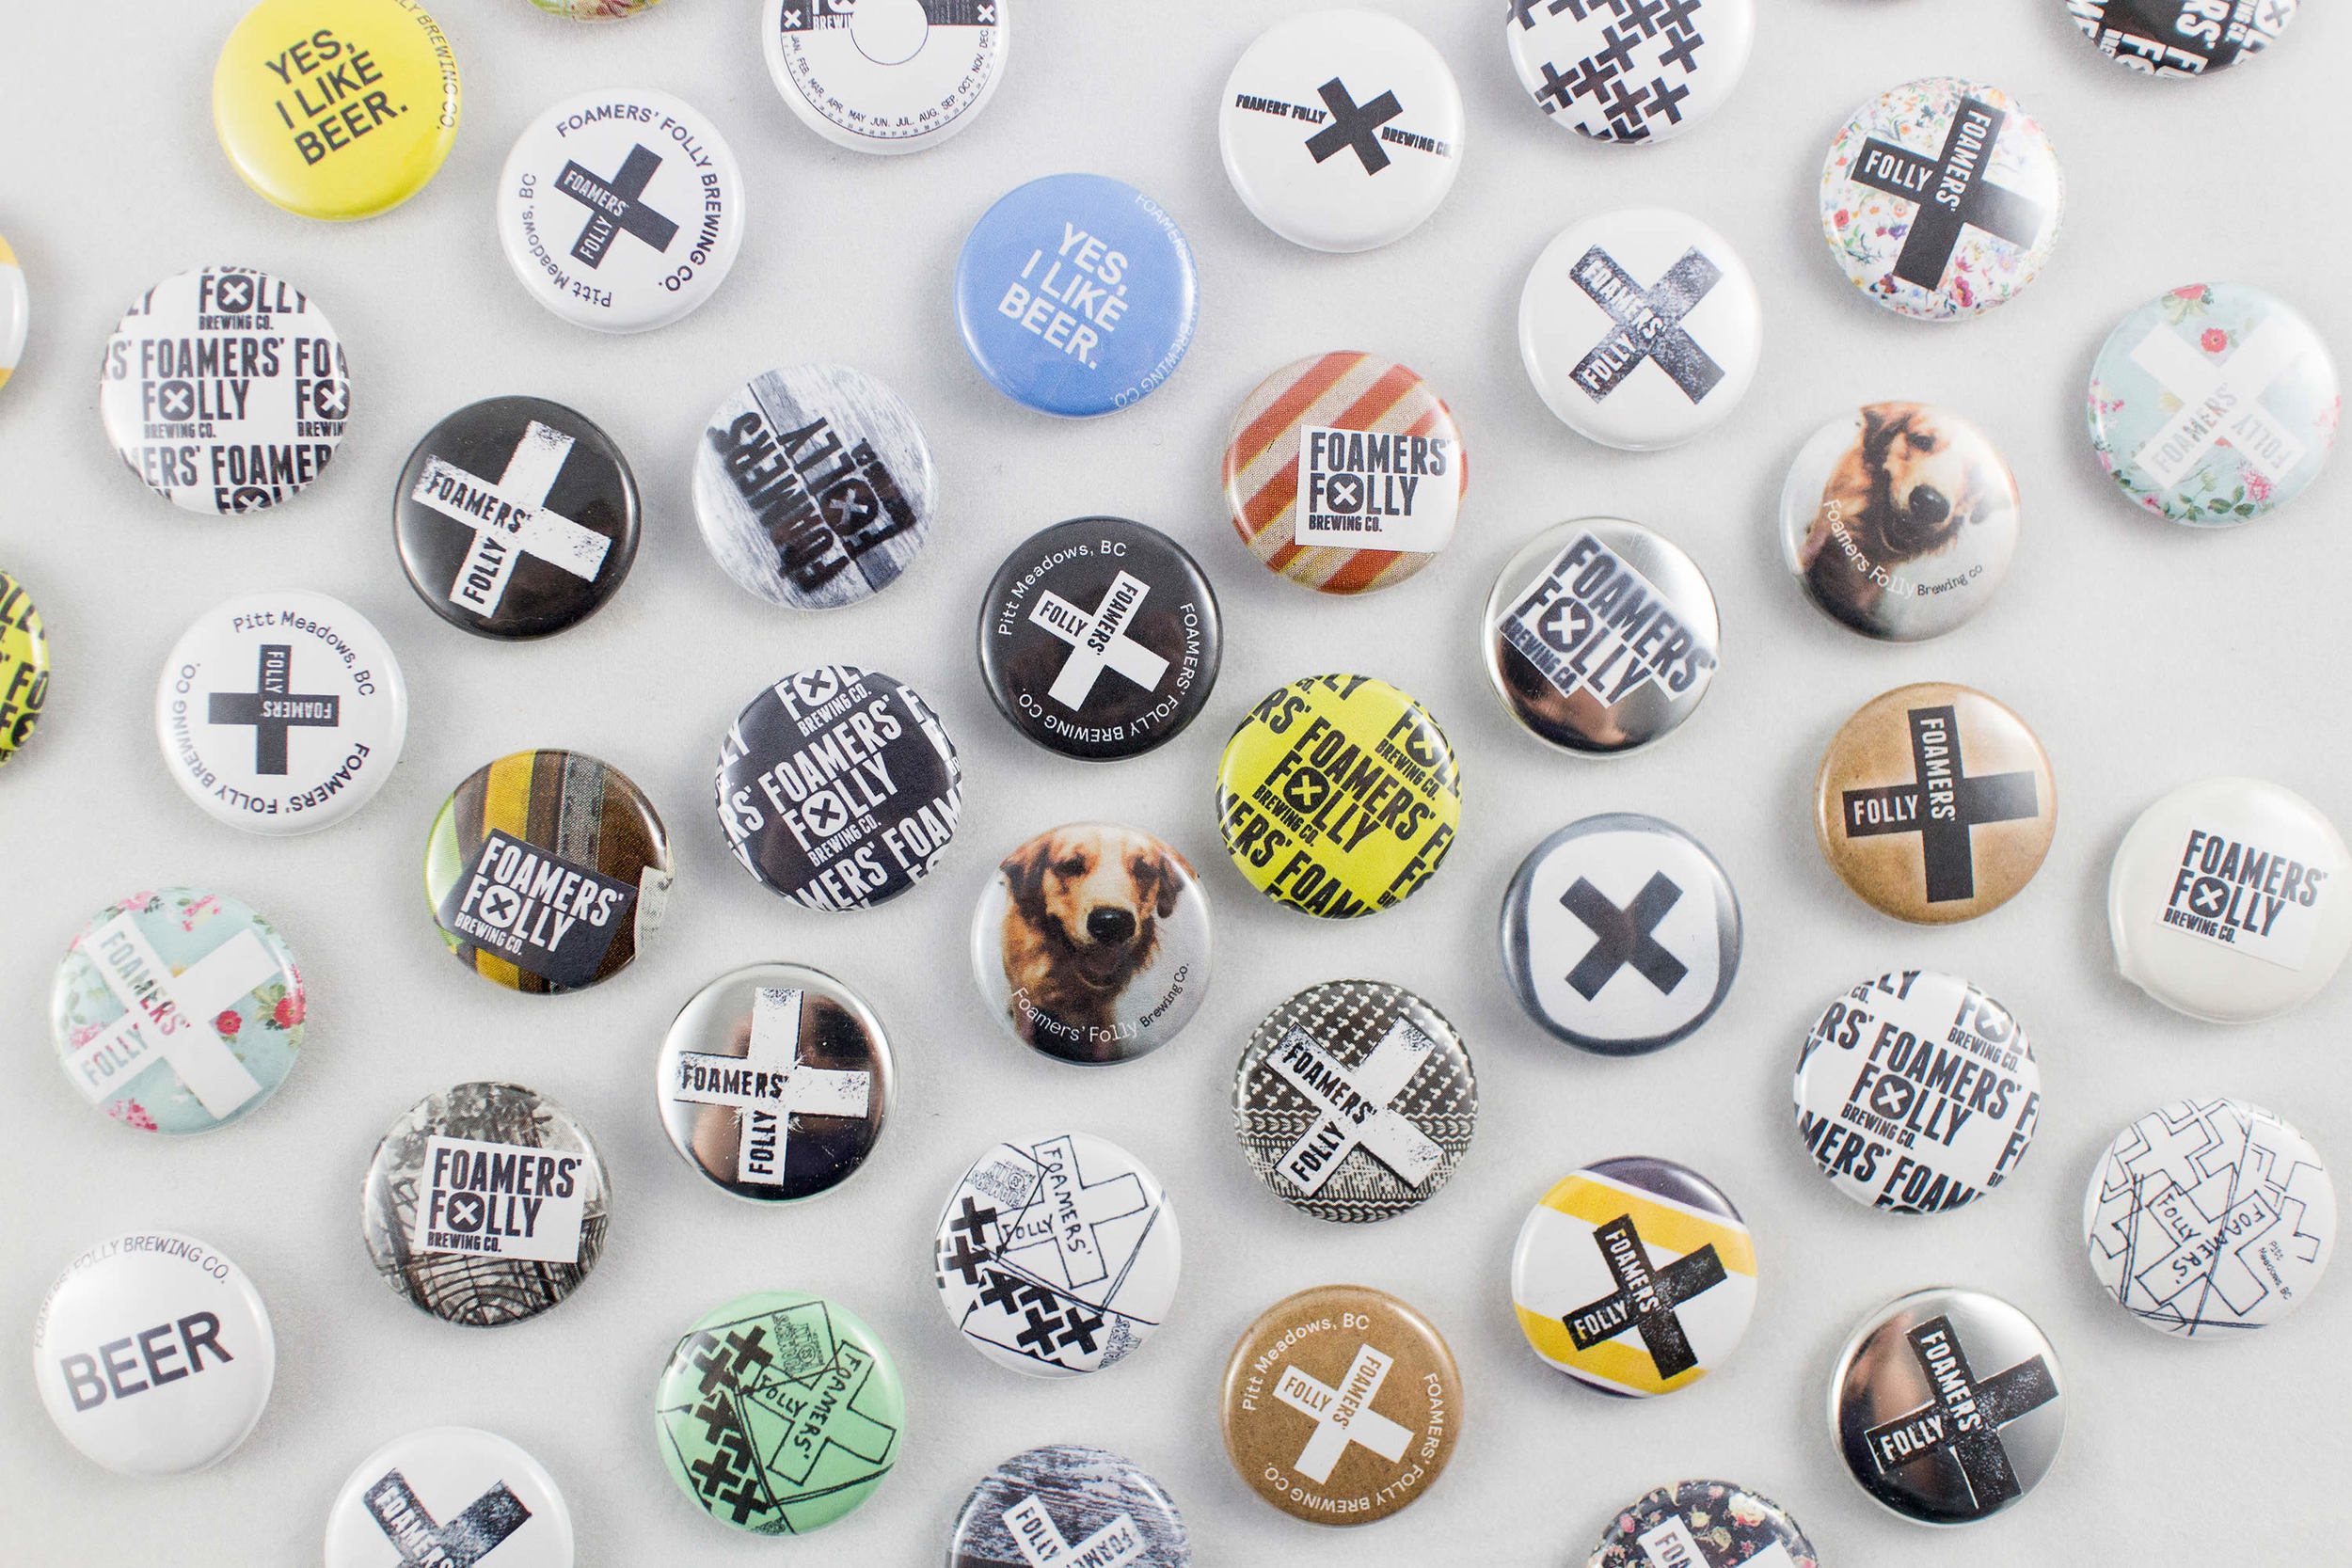 Free Swag: Custom buttons